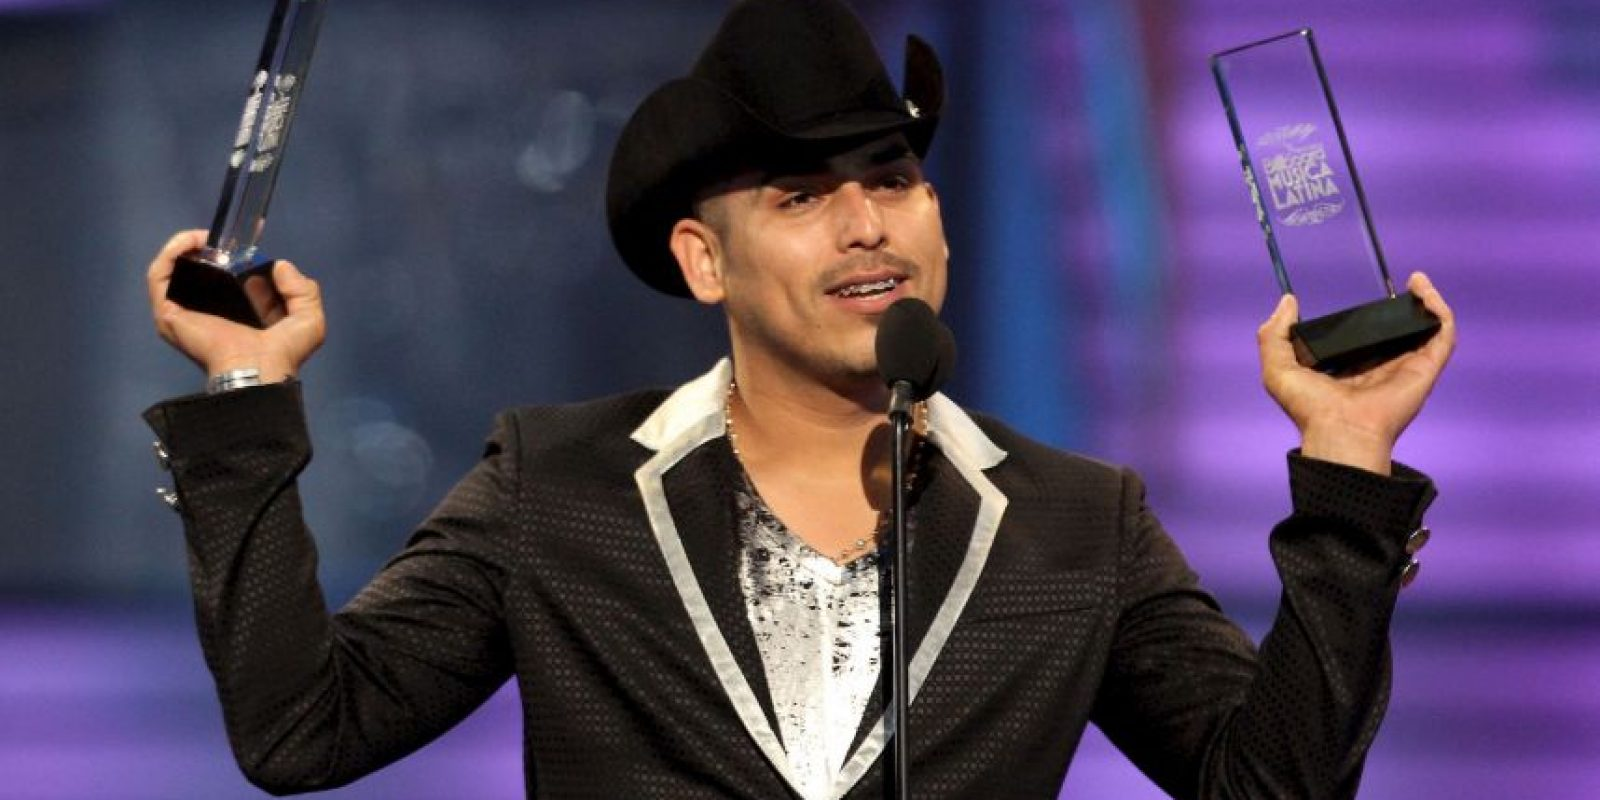 El mexicano Espinoza Paz Foto: Getty